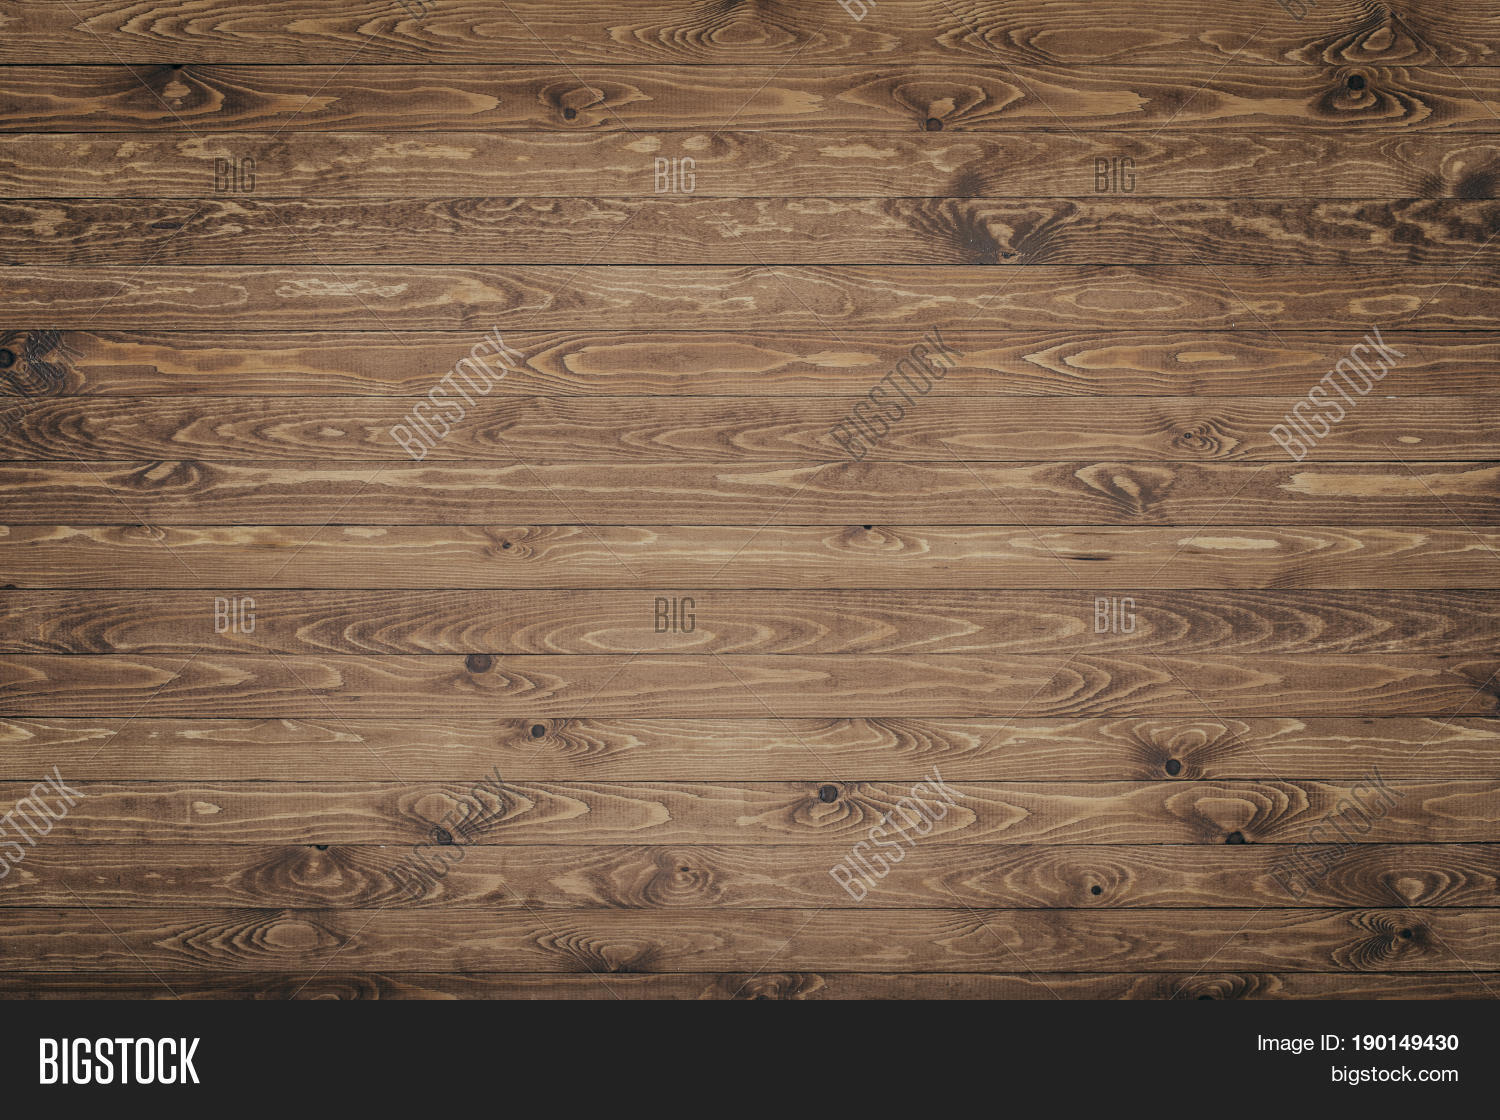 Wood table top texture - Rustic Wood Texture Wood Texture Background Top View Vintage Wood Wood Table